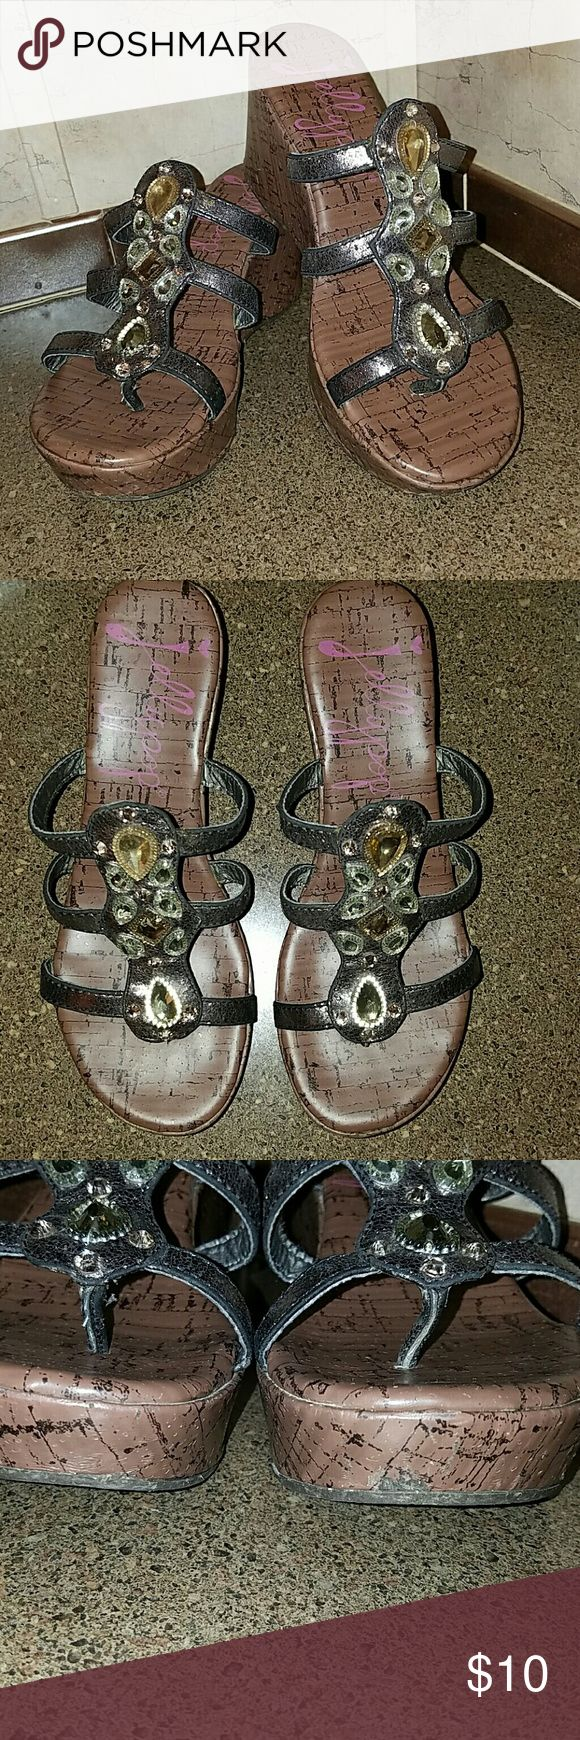 Jellypop Sandals These are size 8. Good used condition but do have minor peeling in places shown in pictures. Jellypop Shoes Sandals